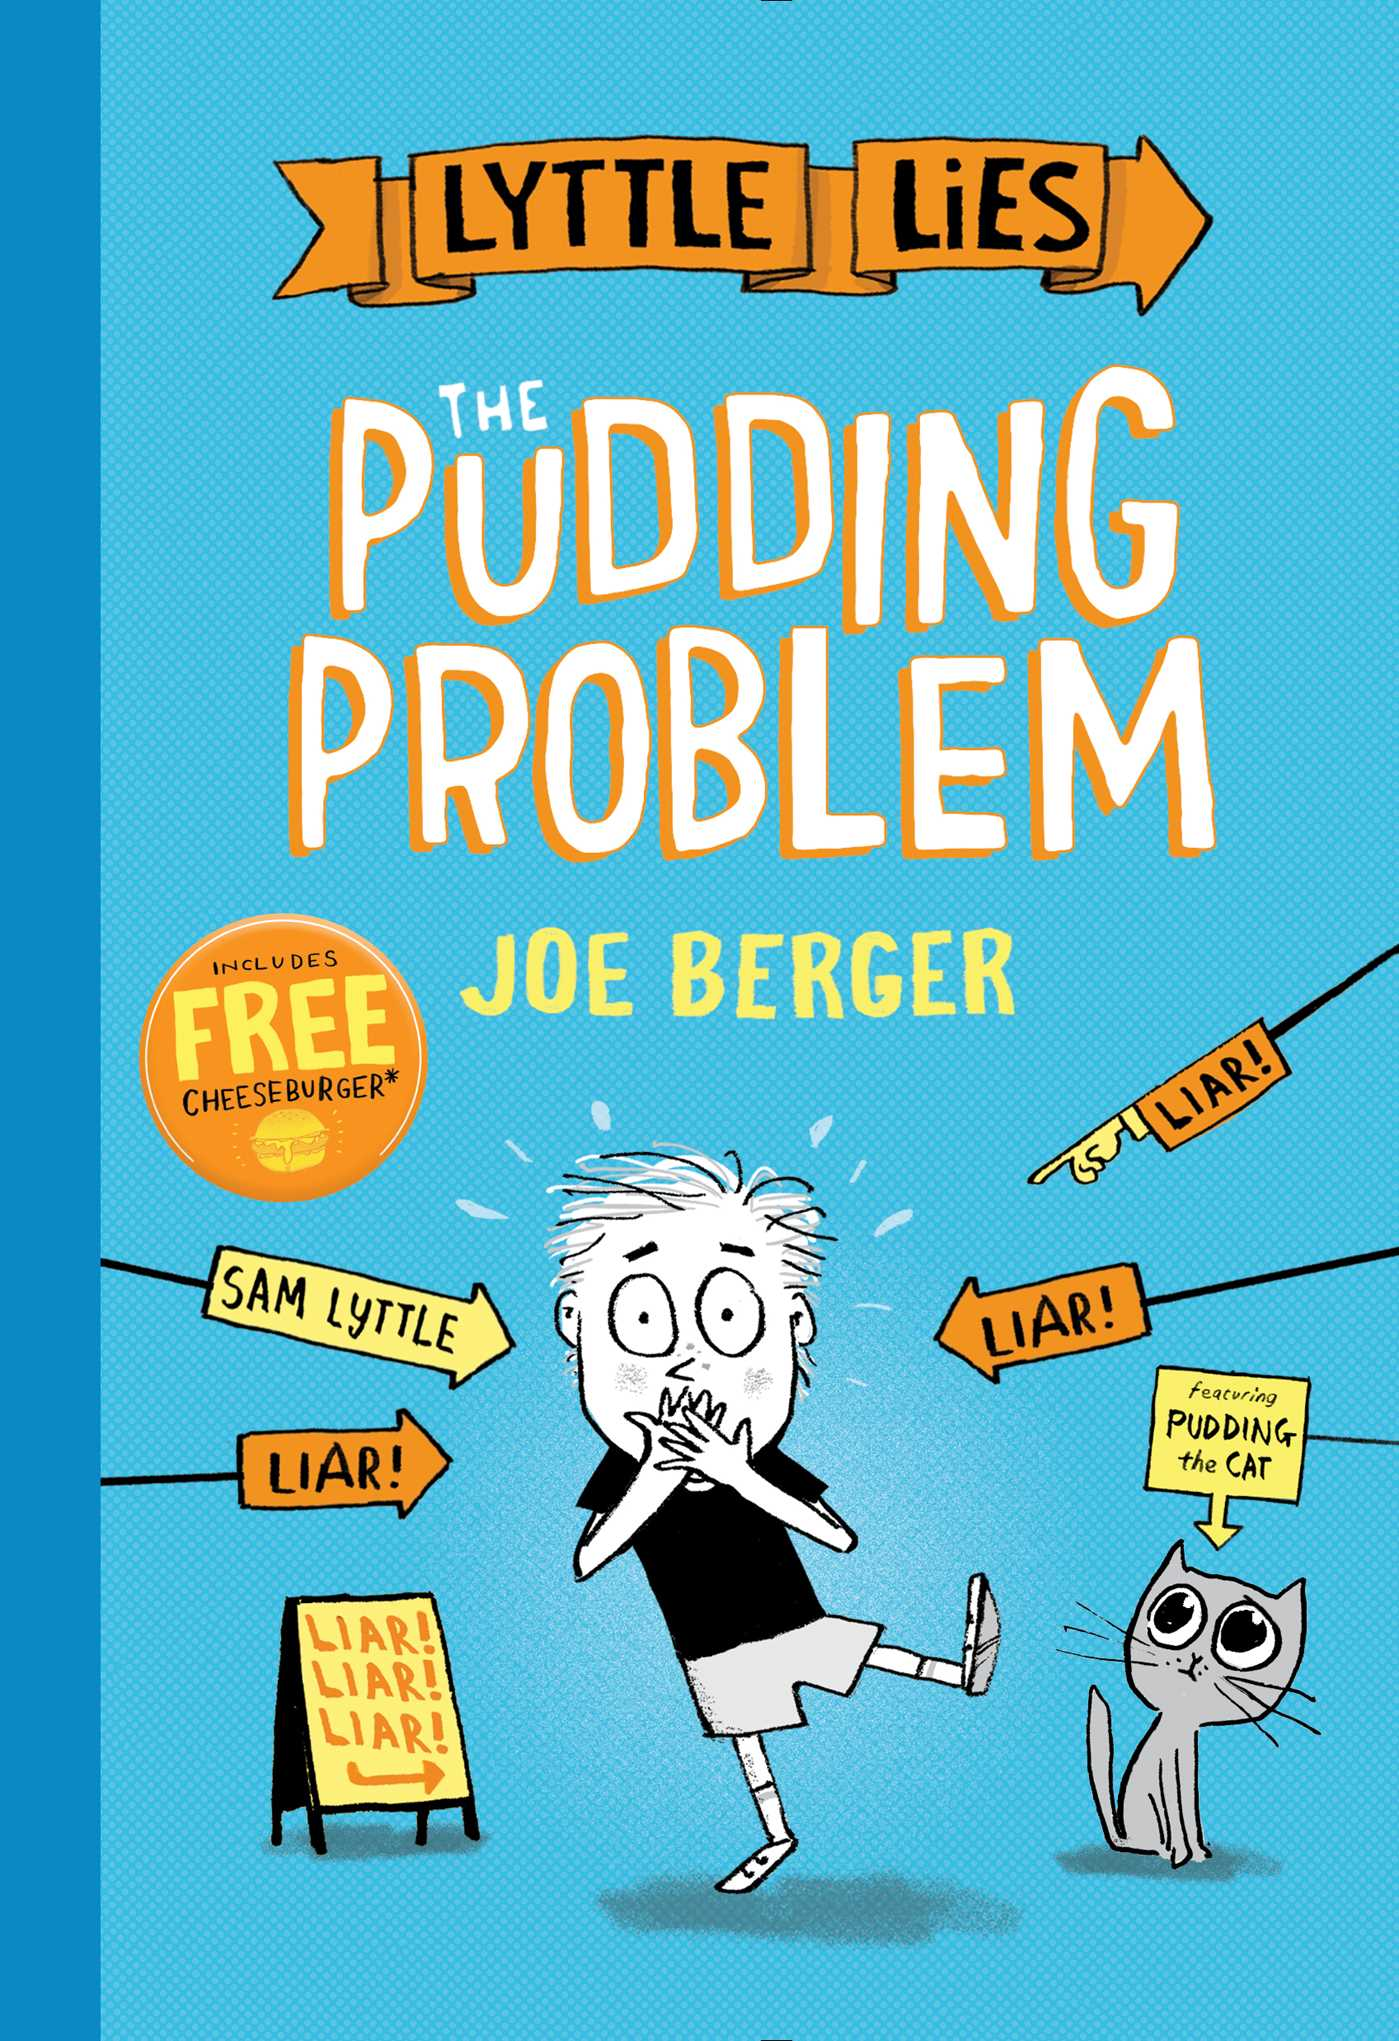 The pudding problem 9781481470834 hr